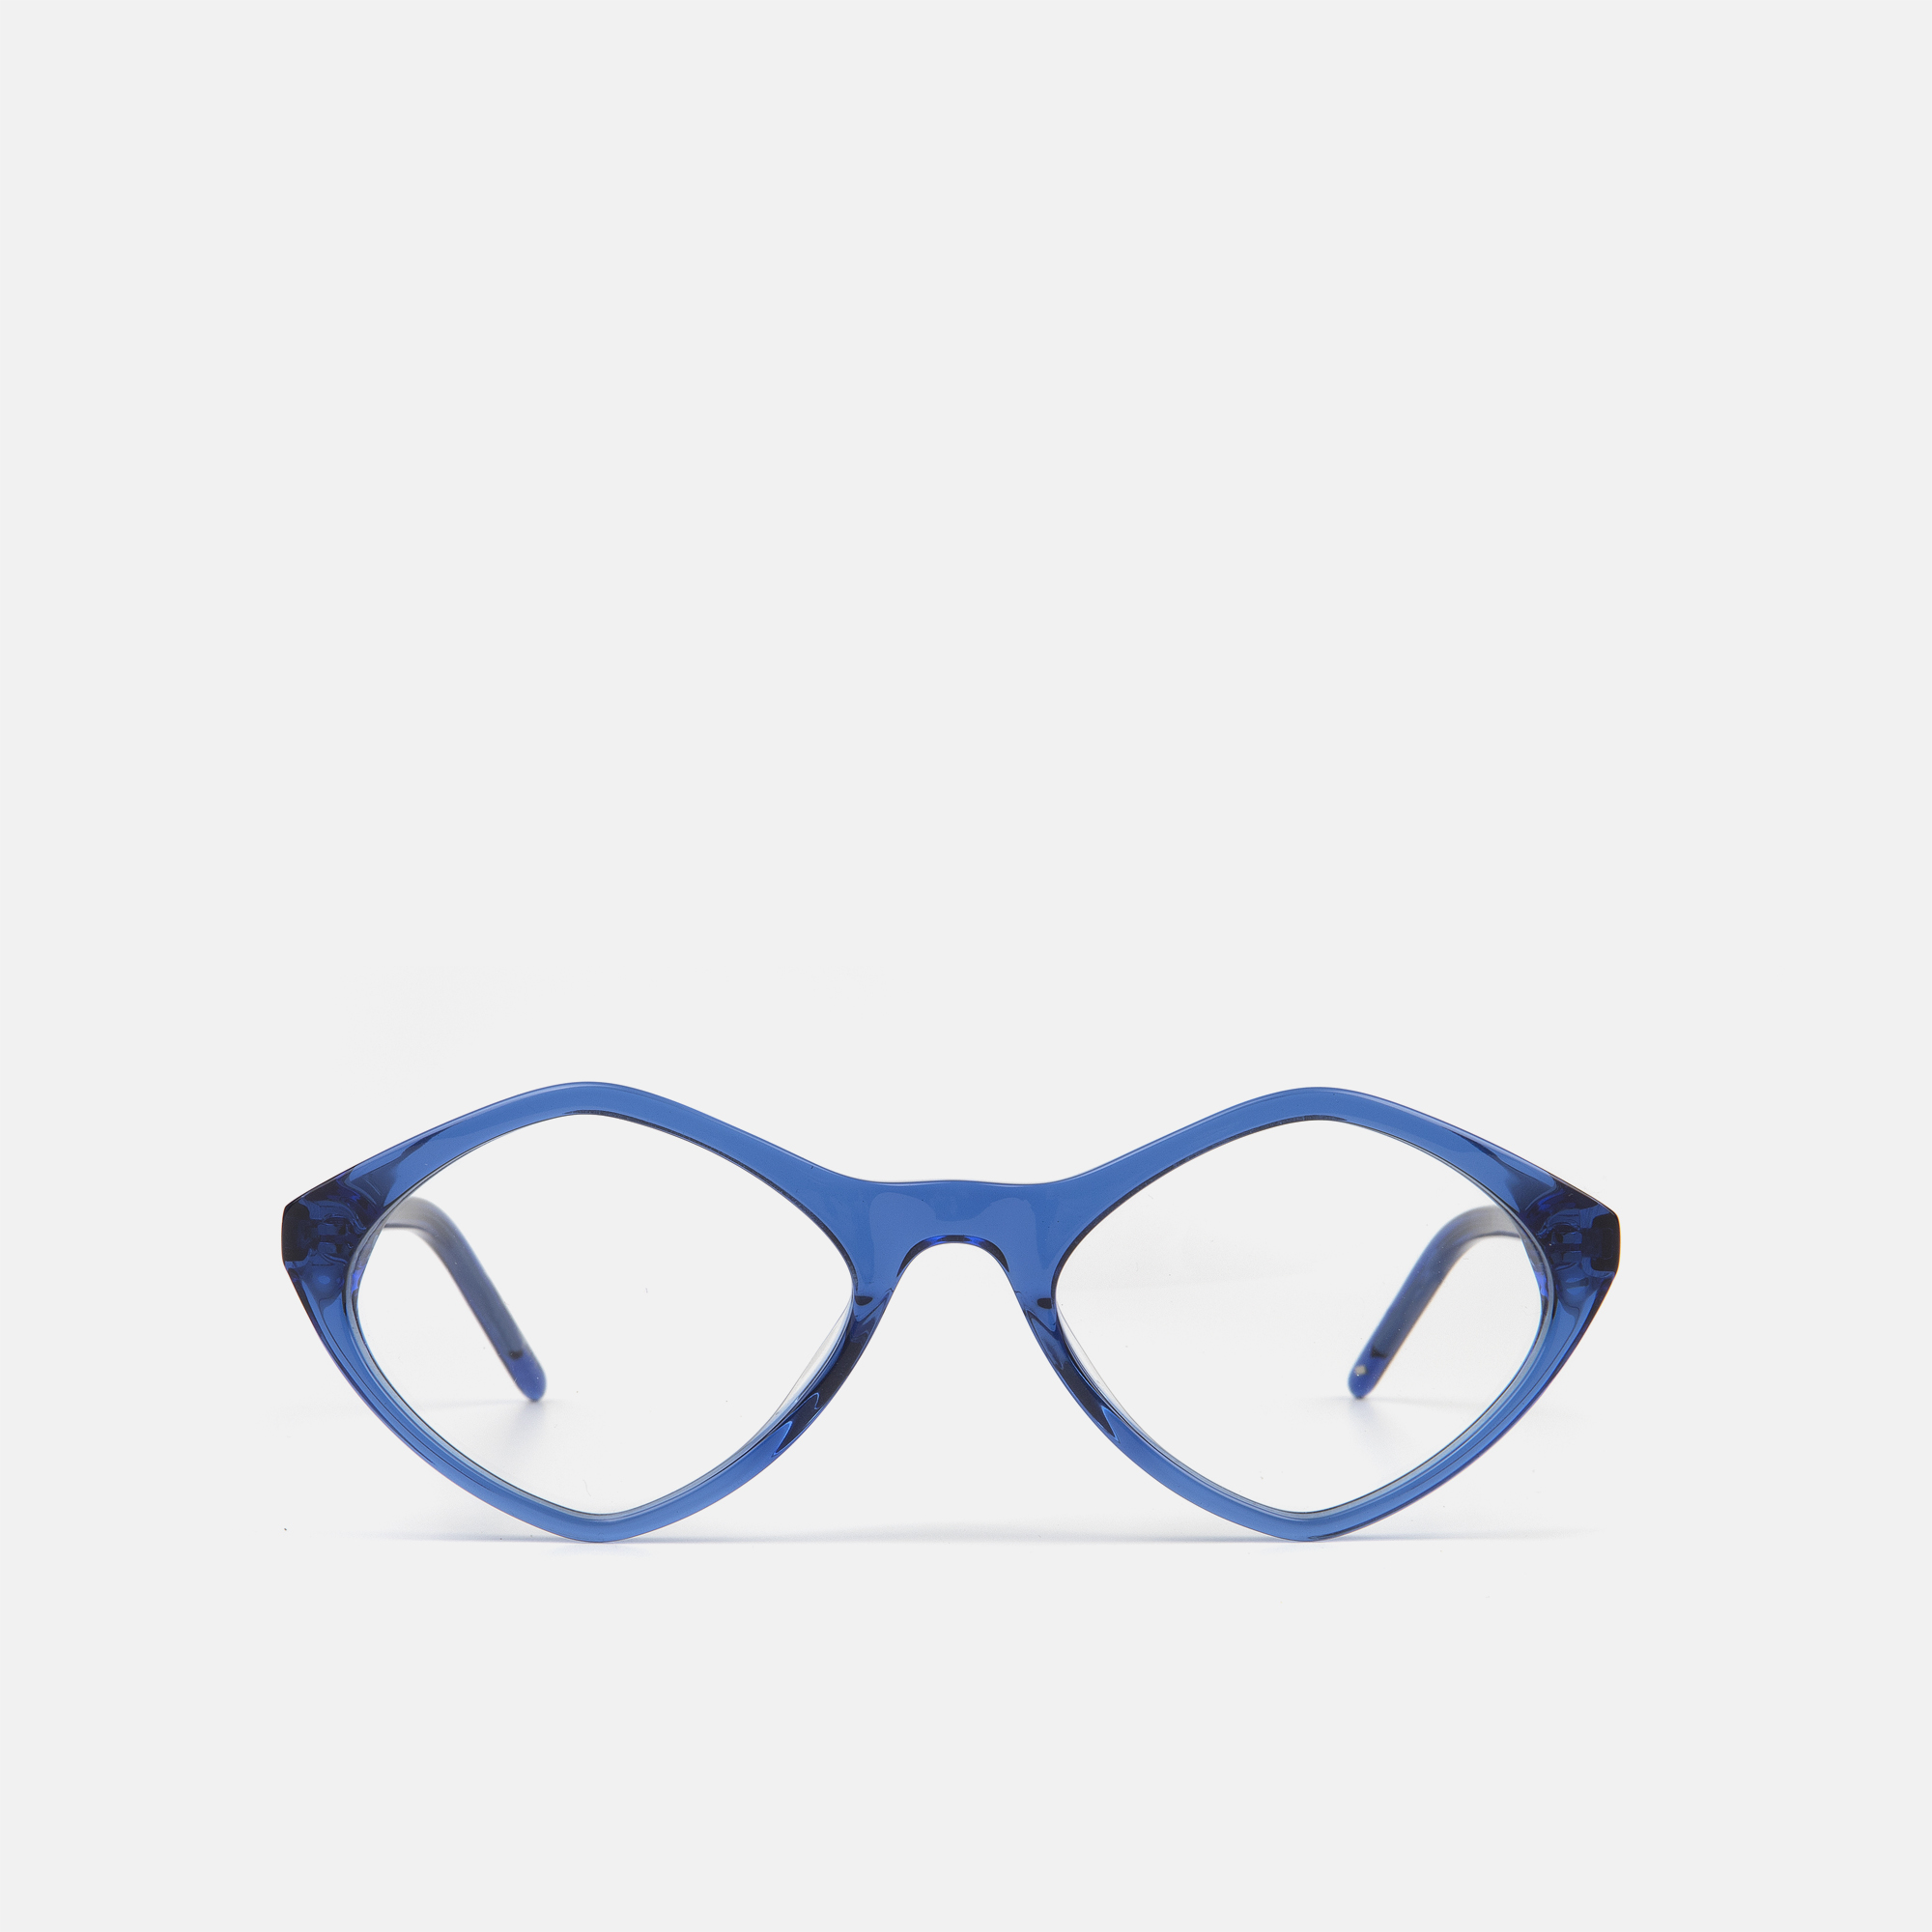 mó geek 72A A, blue, hi-res